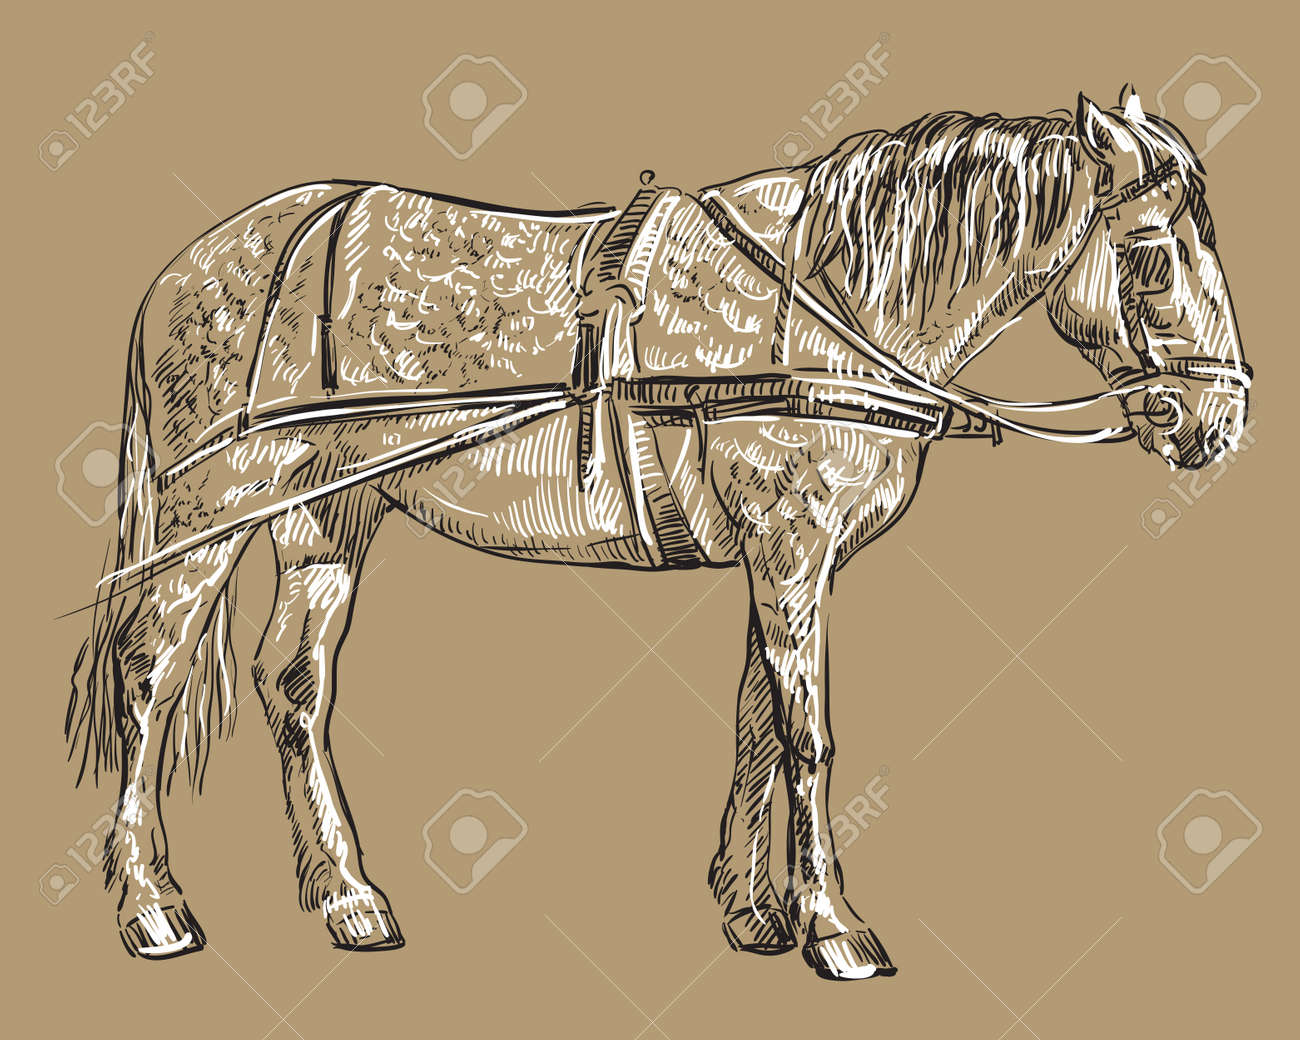 Vector Hand Drawing Illustration Horse In Harness Standing In Royalty Free Cliparts Vectors And Stock Illustration Image 144612169